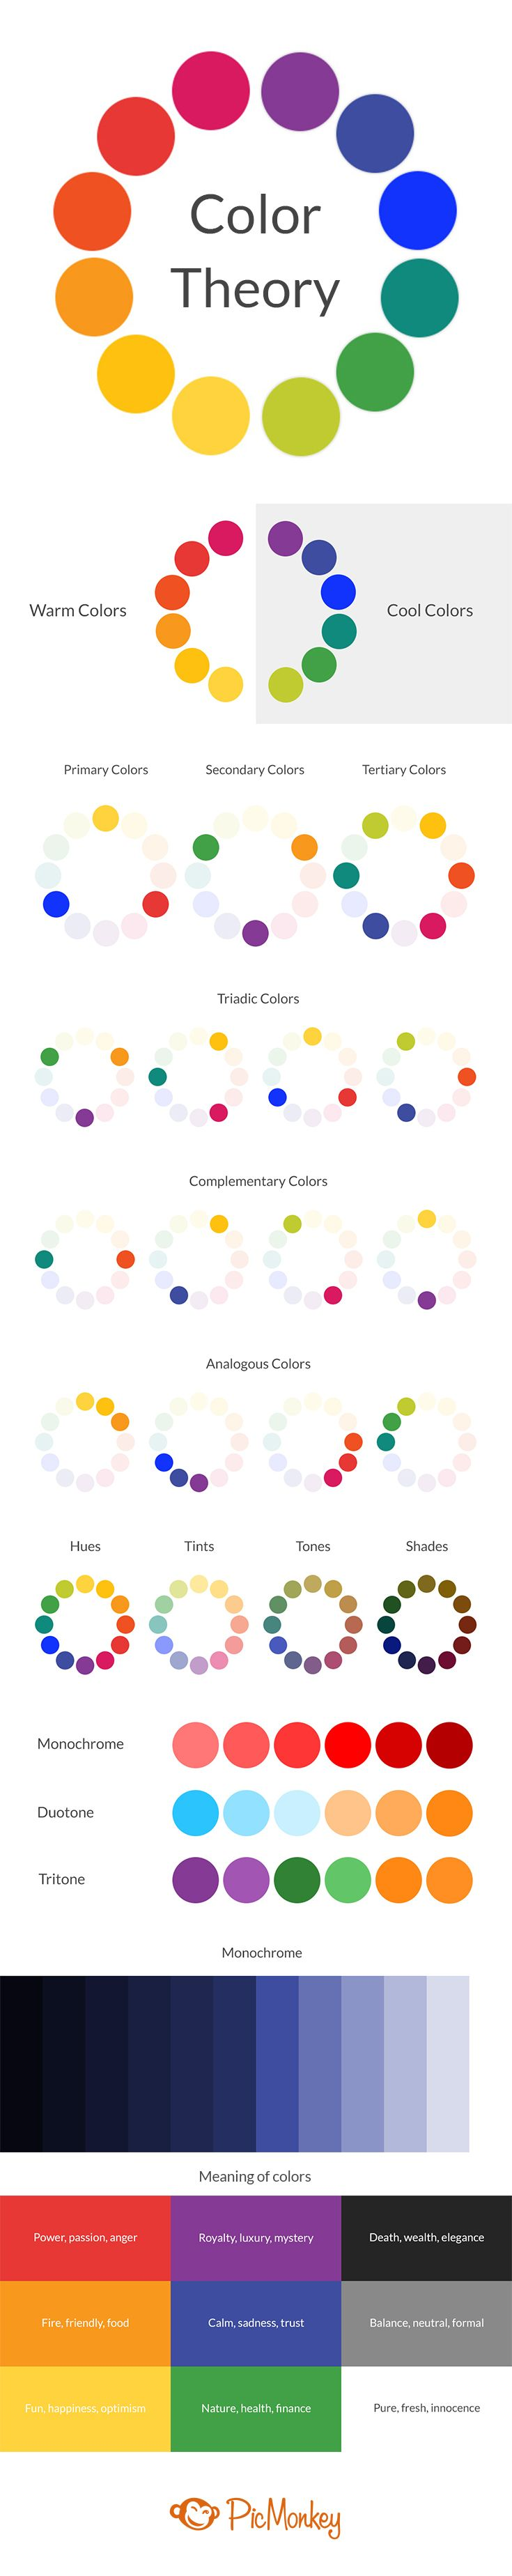 Color theory online games - Color Theory Choosing The Best Colors For Your Designs